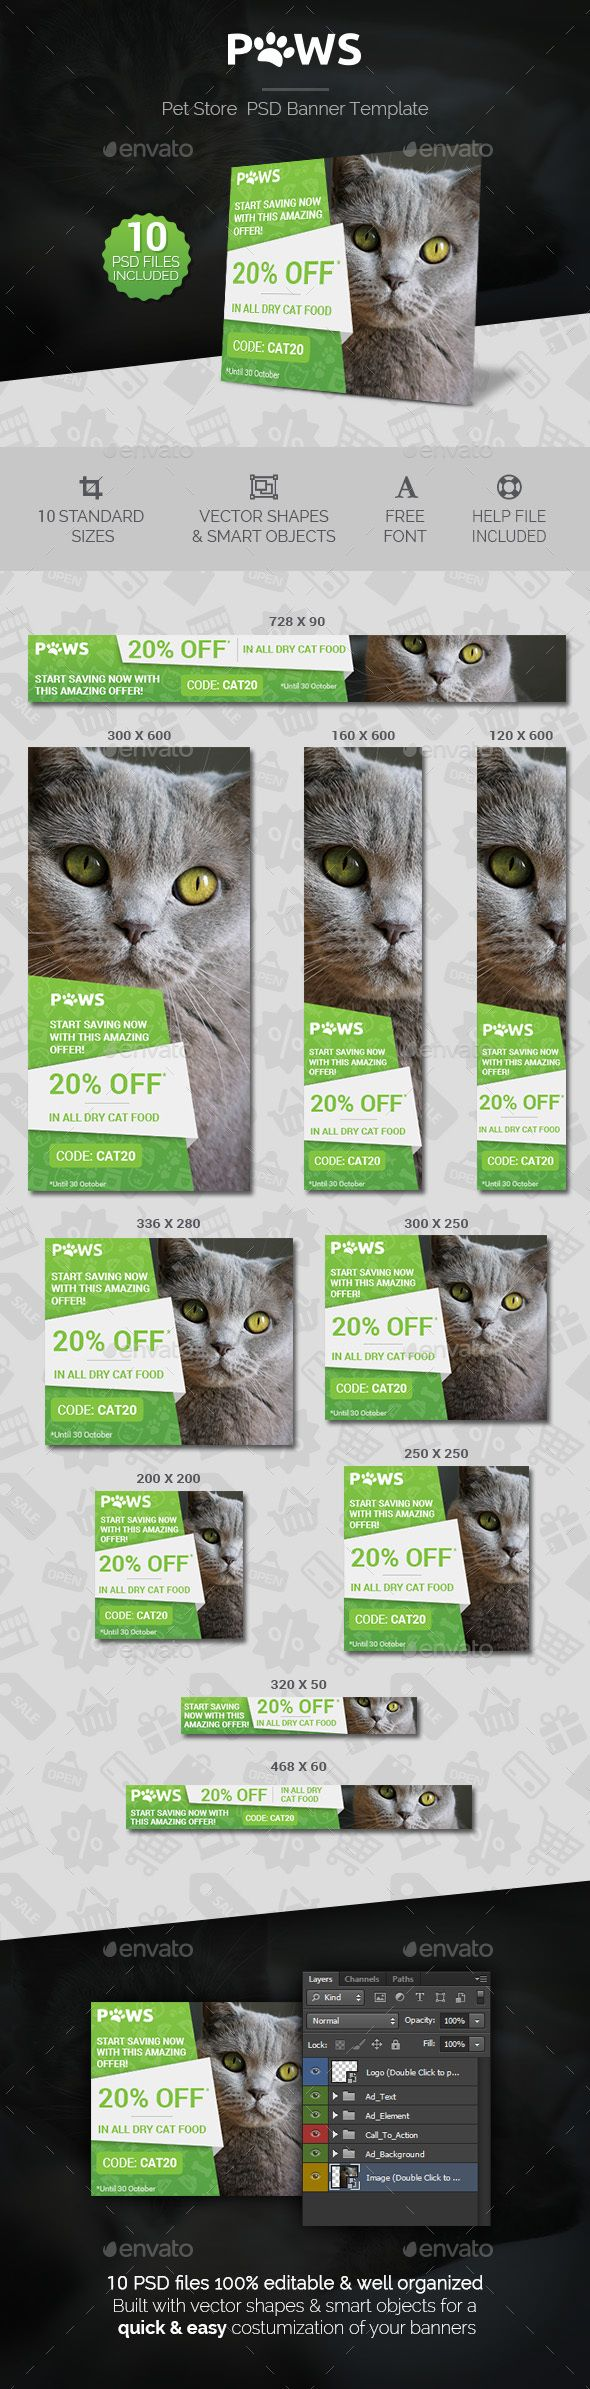 Paws - Pet Store Banner Template PSD